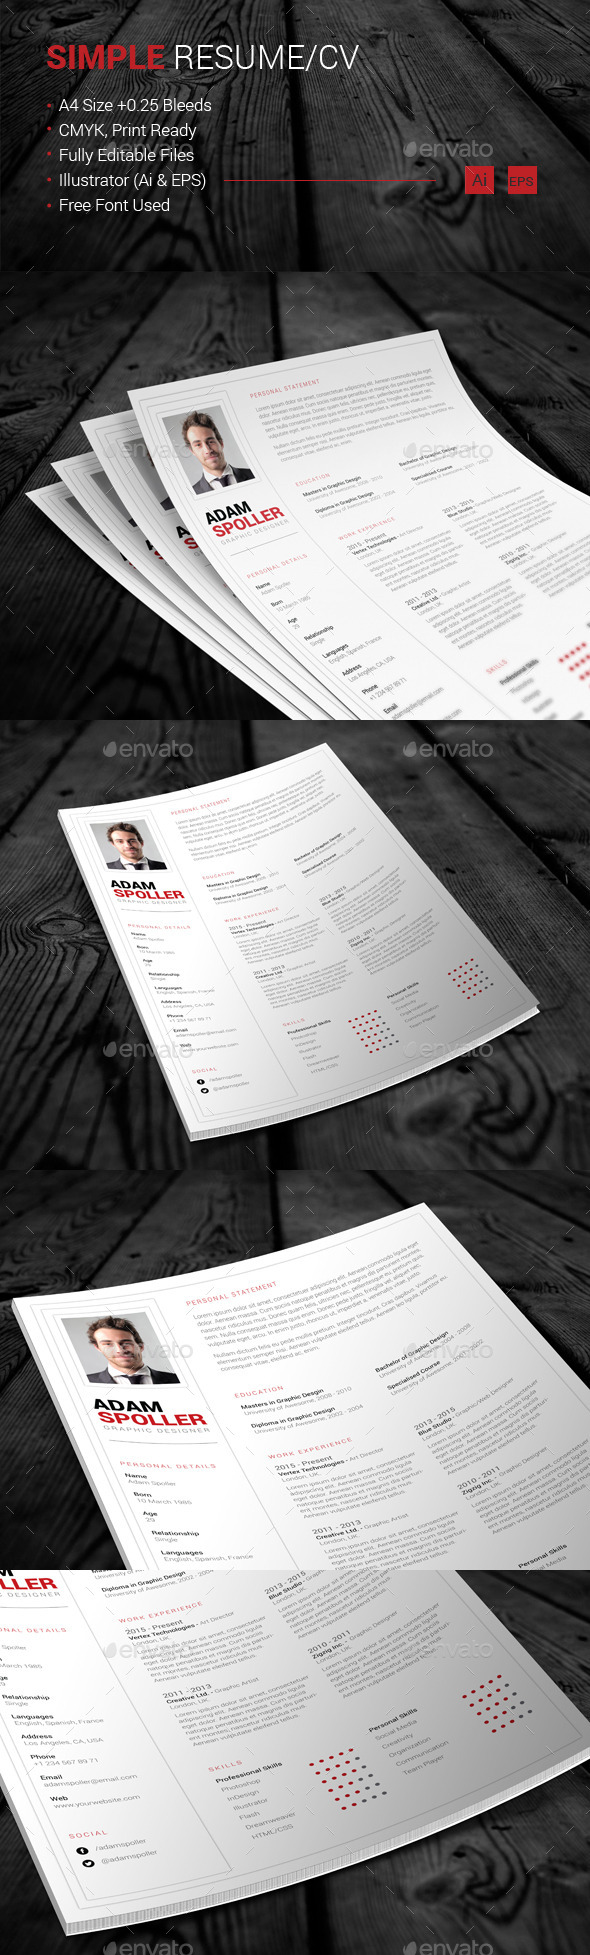 GraphicRiver Simple Resume CV 11026896